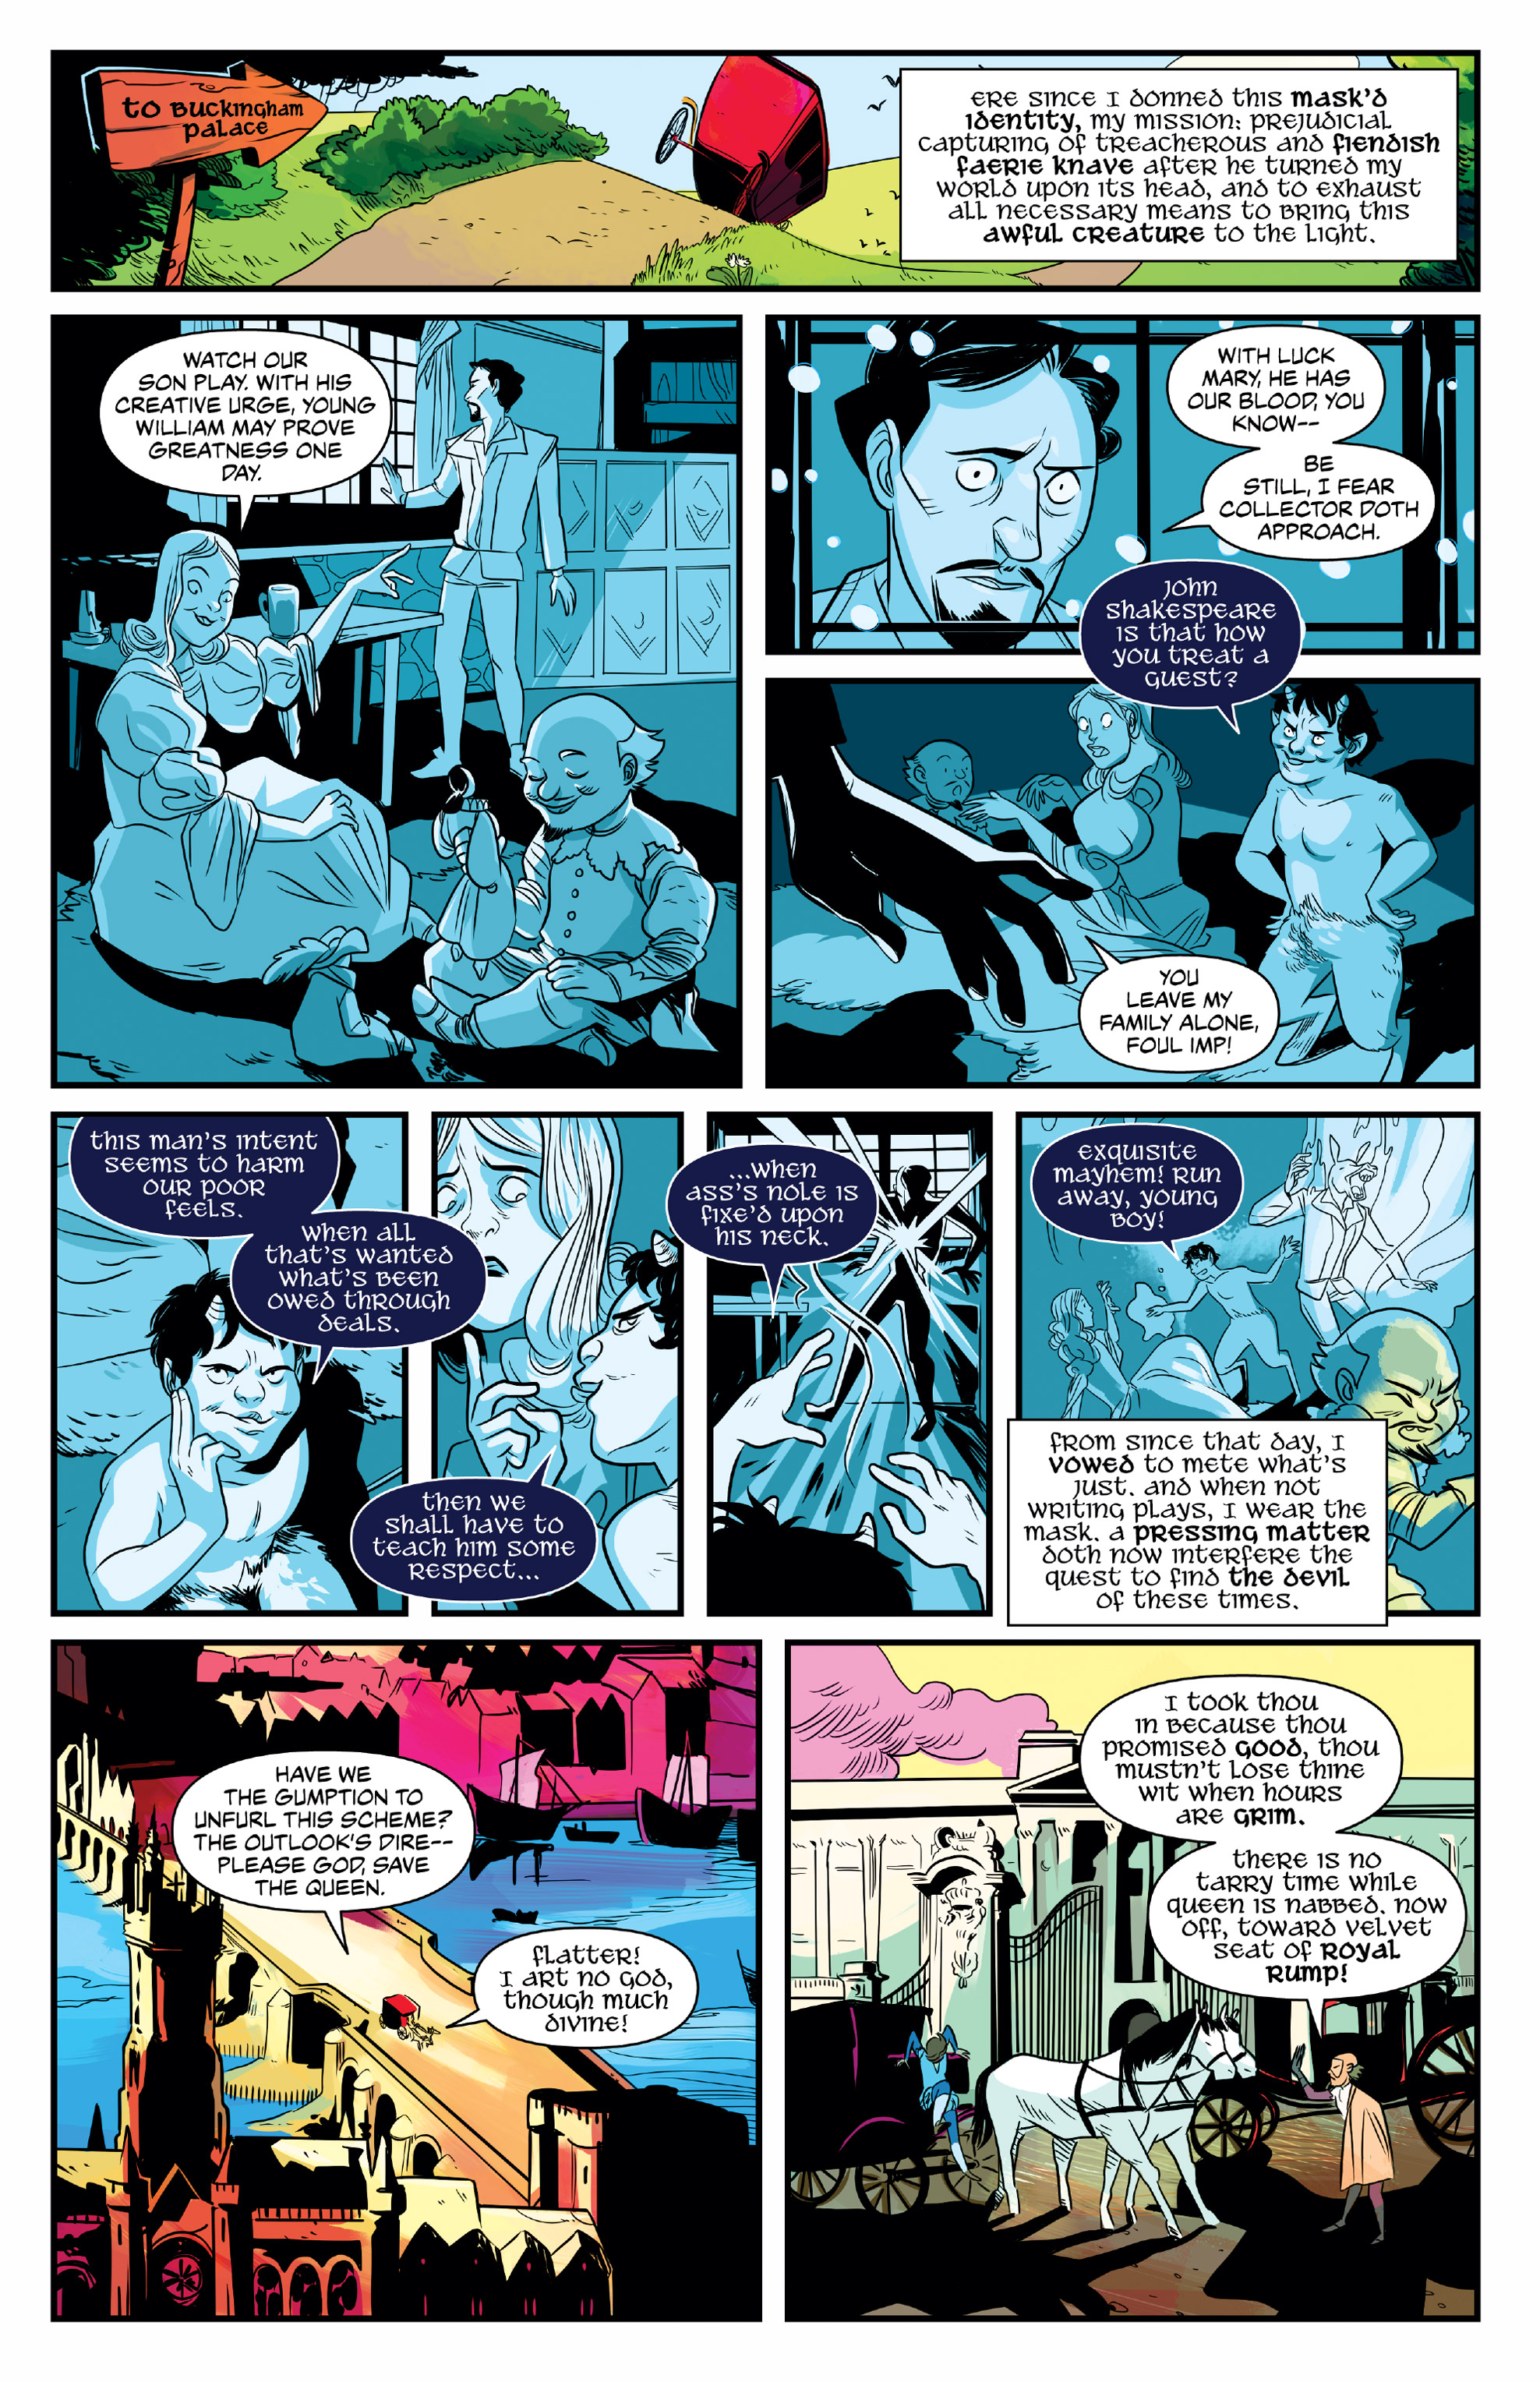 NO HOLDS BARD #1 page 6